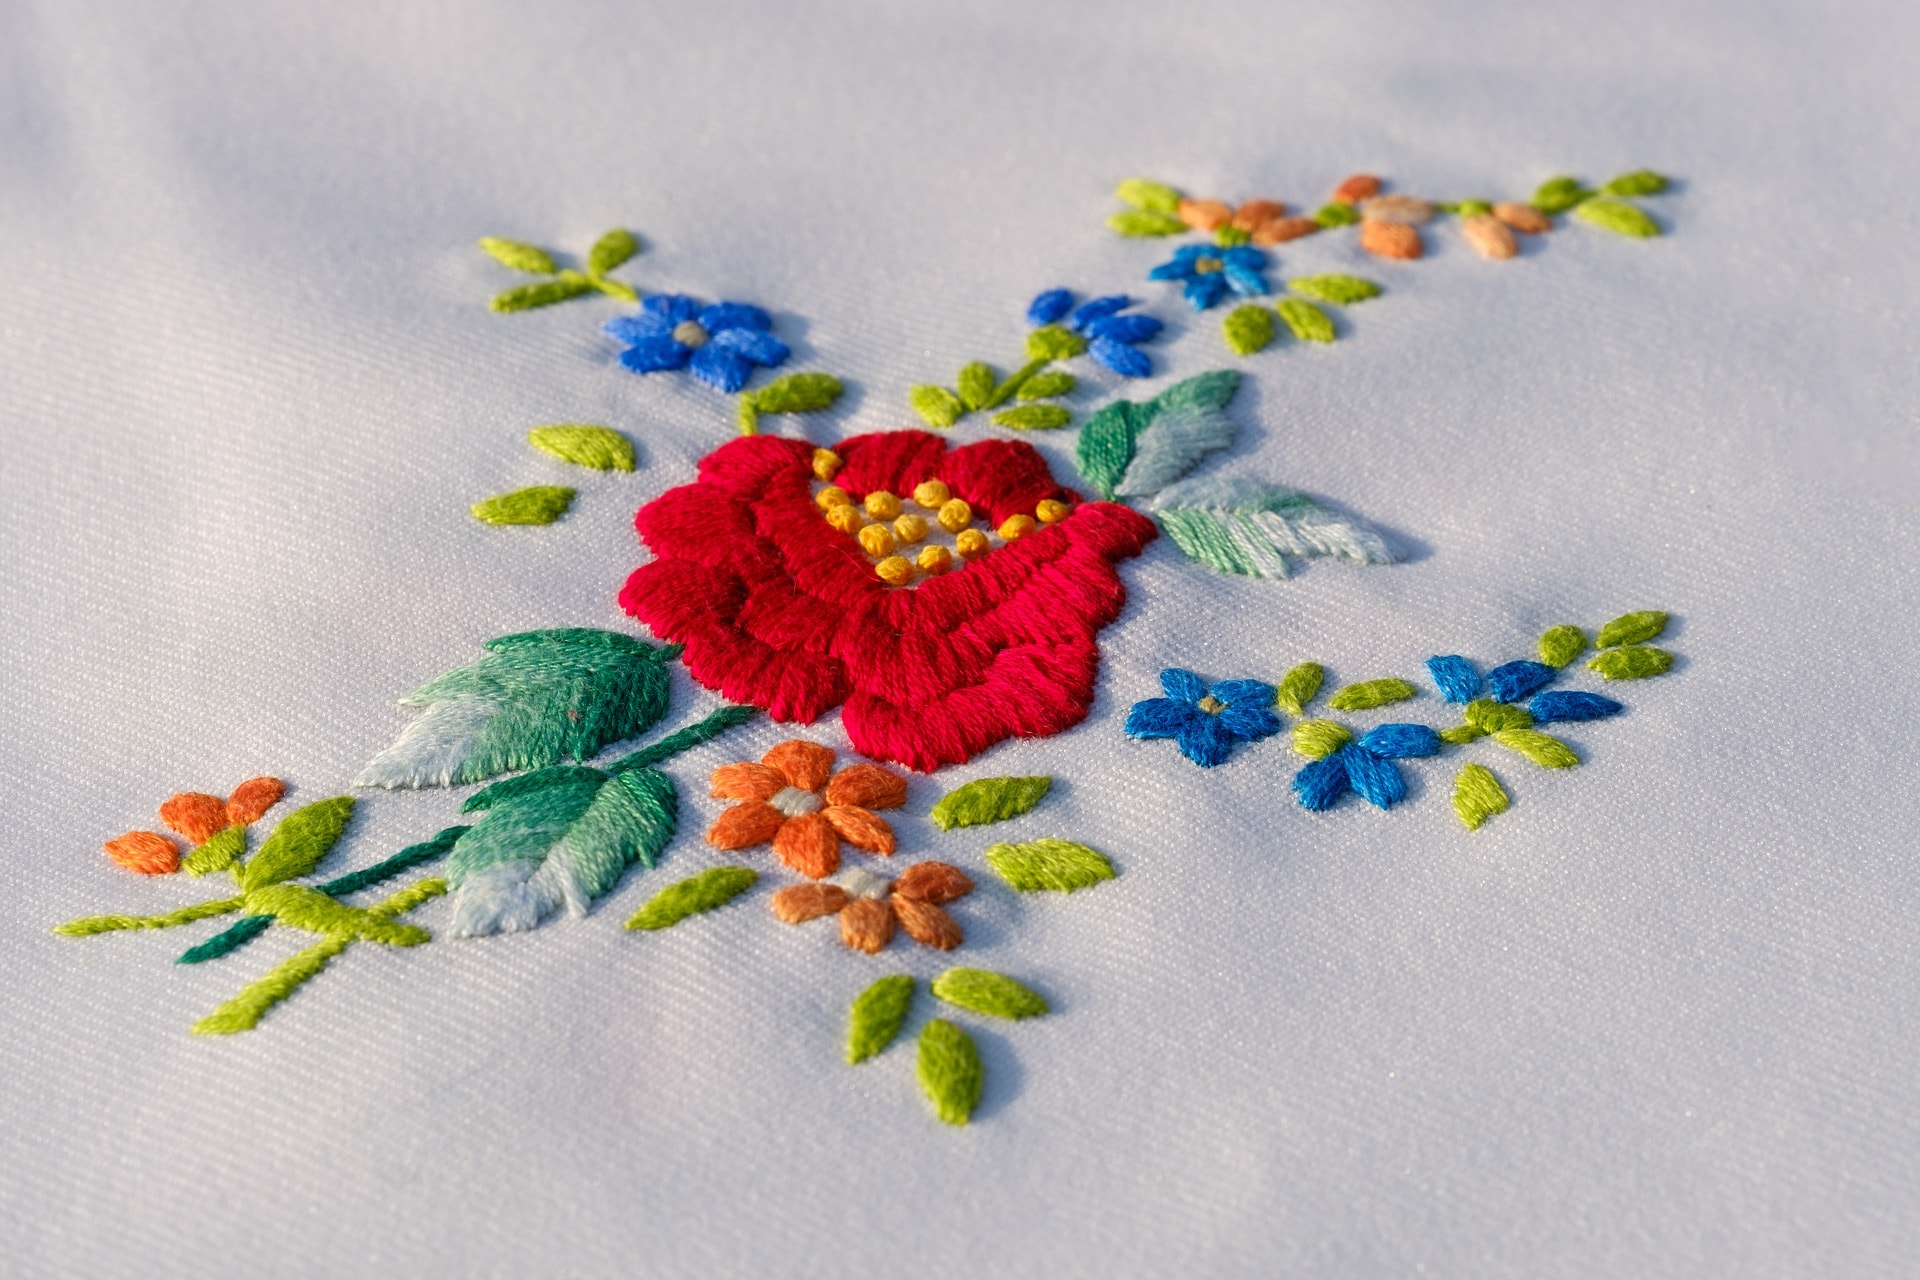 How Long Does It Take To Embroider?